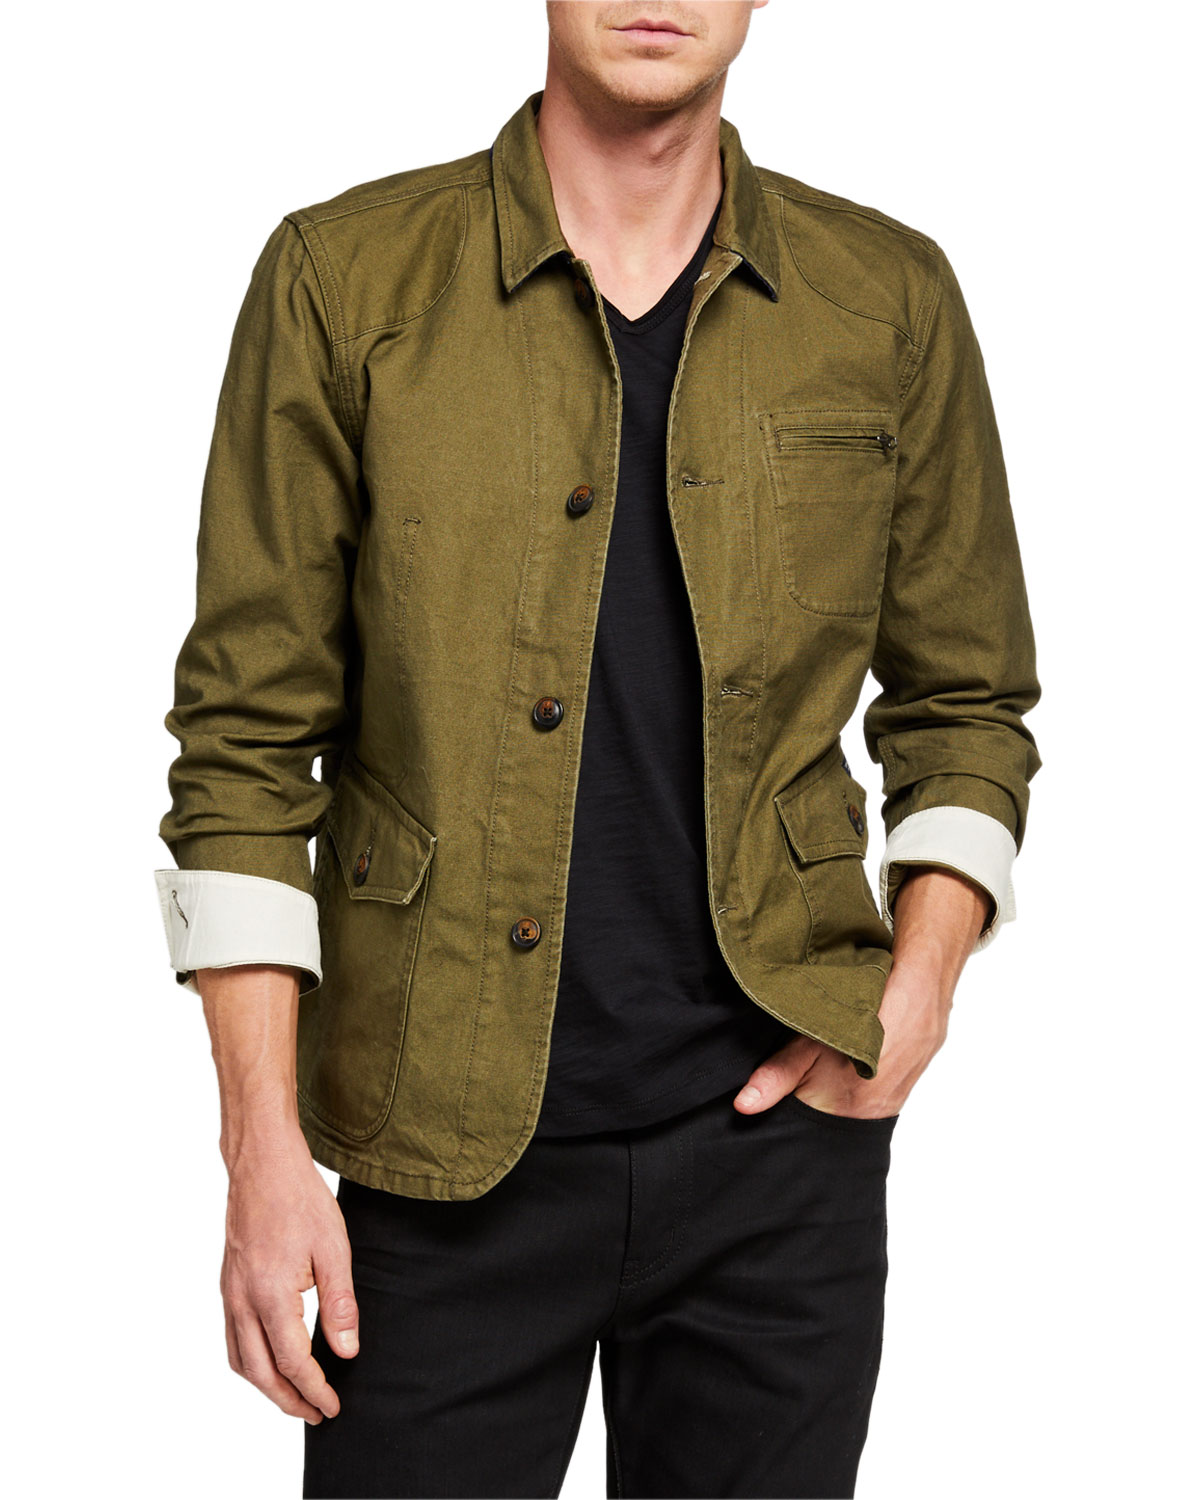 Scotch & Soda Men's Military Canvas Jacket